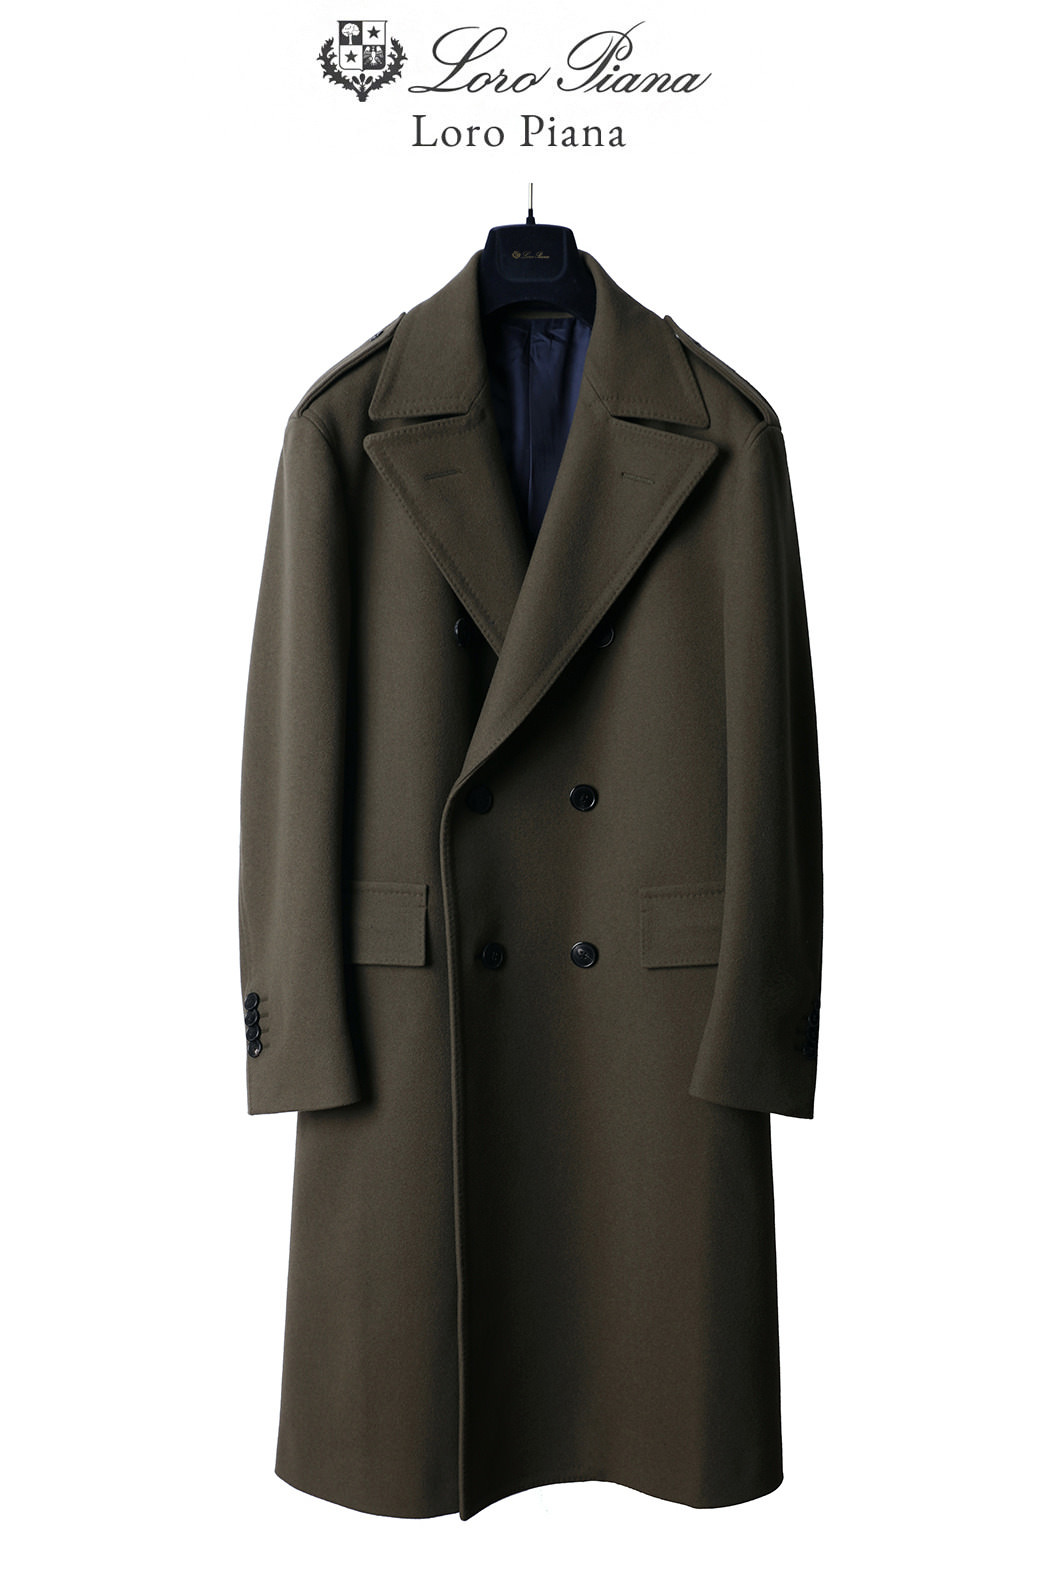 516 LOROPIANA COMMAND COAT-OLIVE